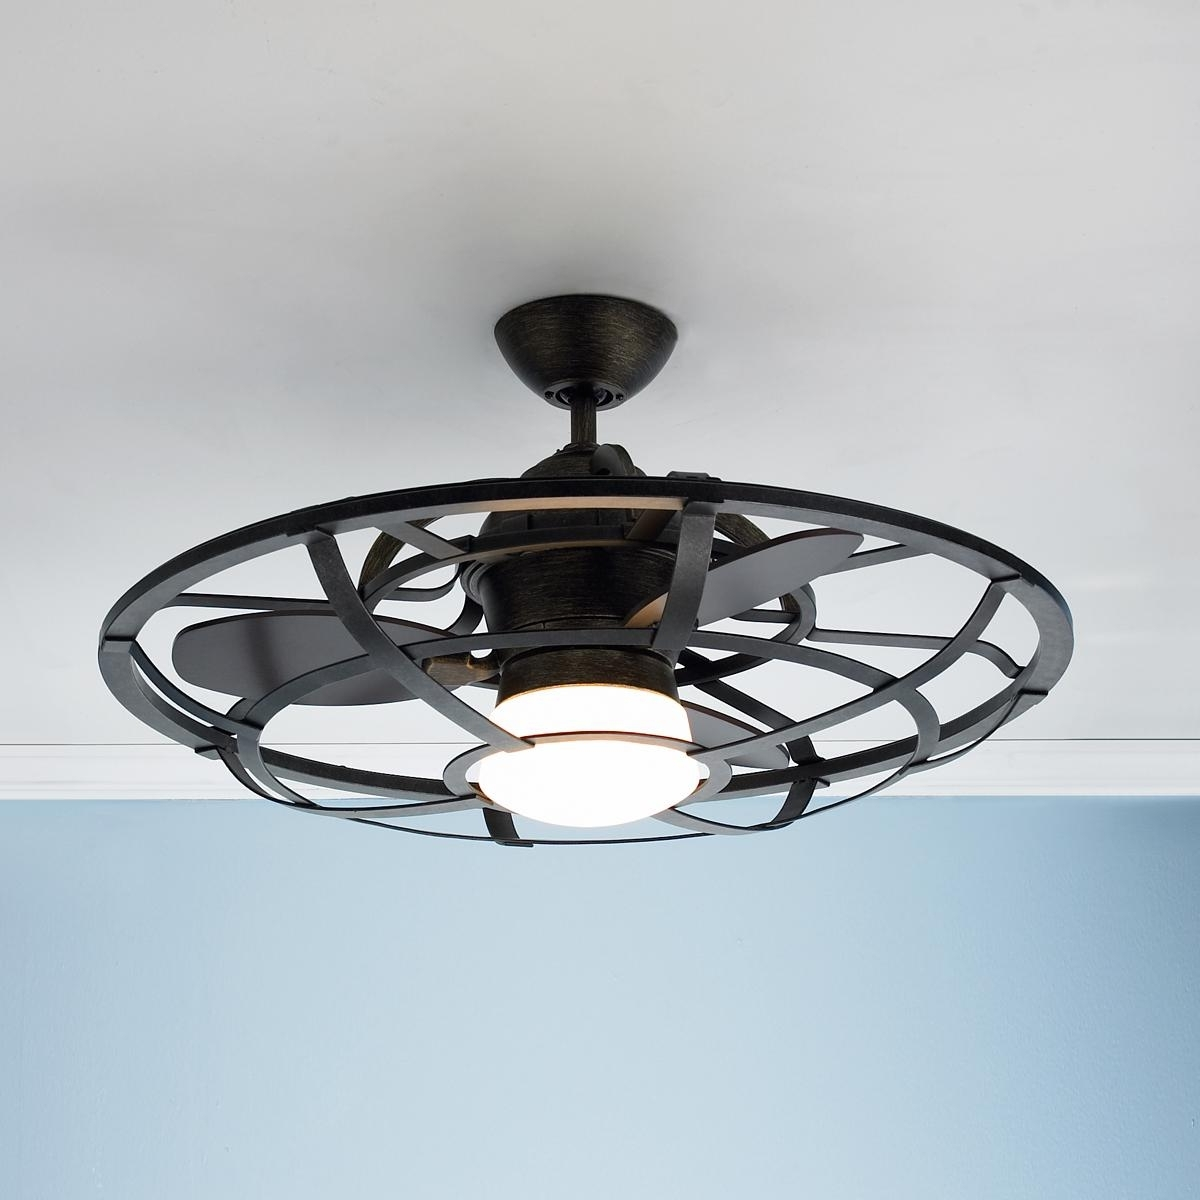 Outdoor Ceiling Fans For Canopy Inside Most Recent Stylish Ceiling Fan For Garage With Lights — Ganncellars (View 20 of 20)